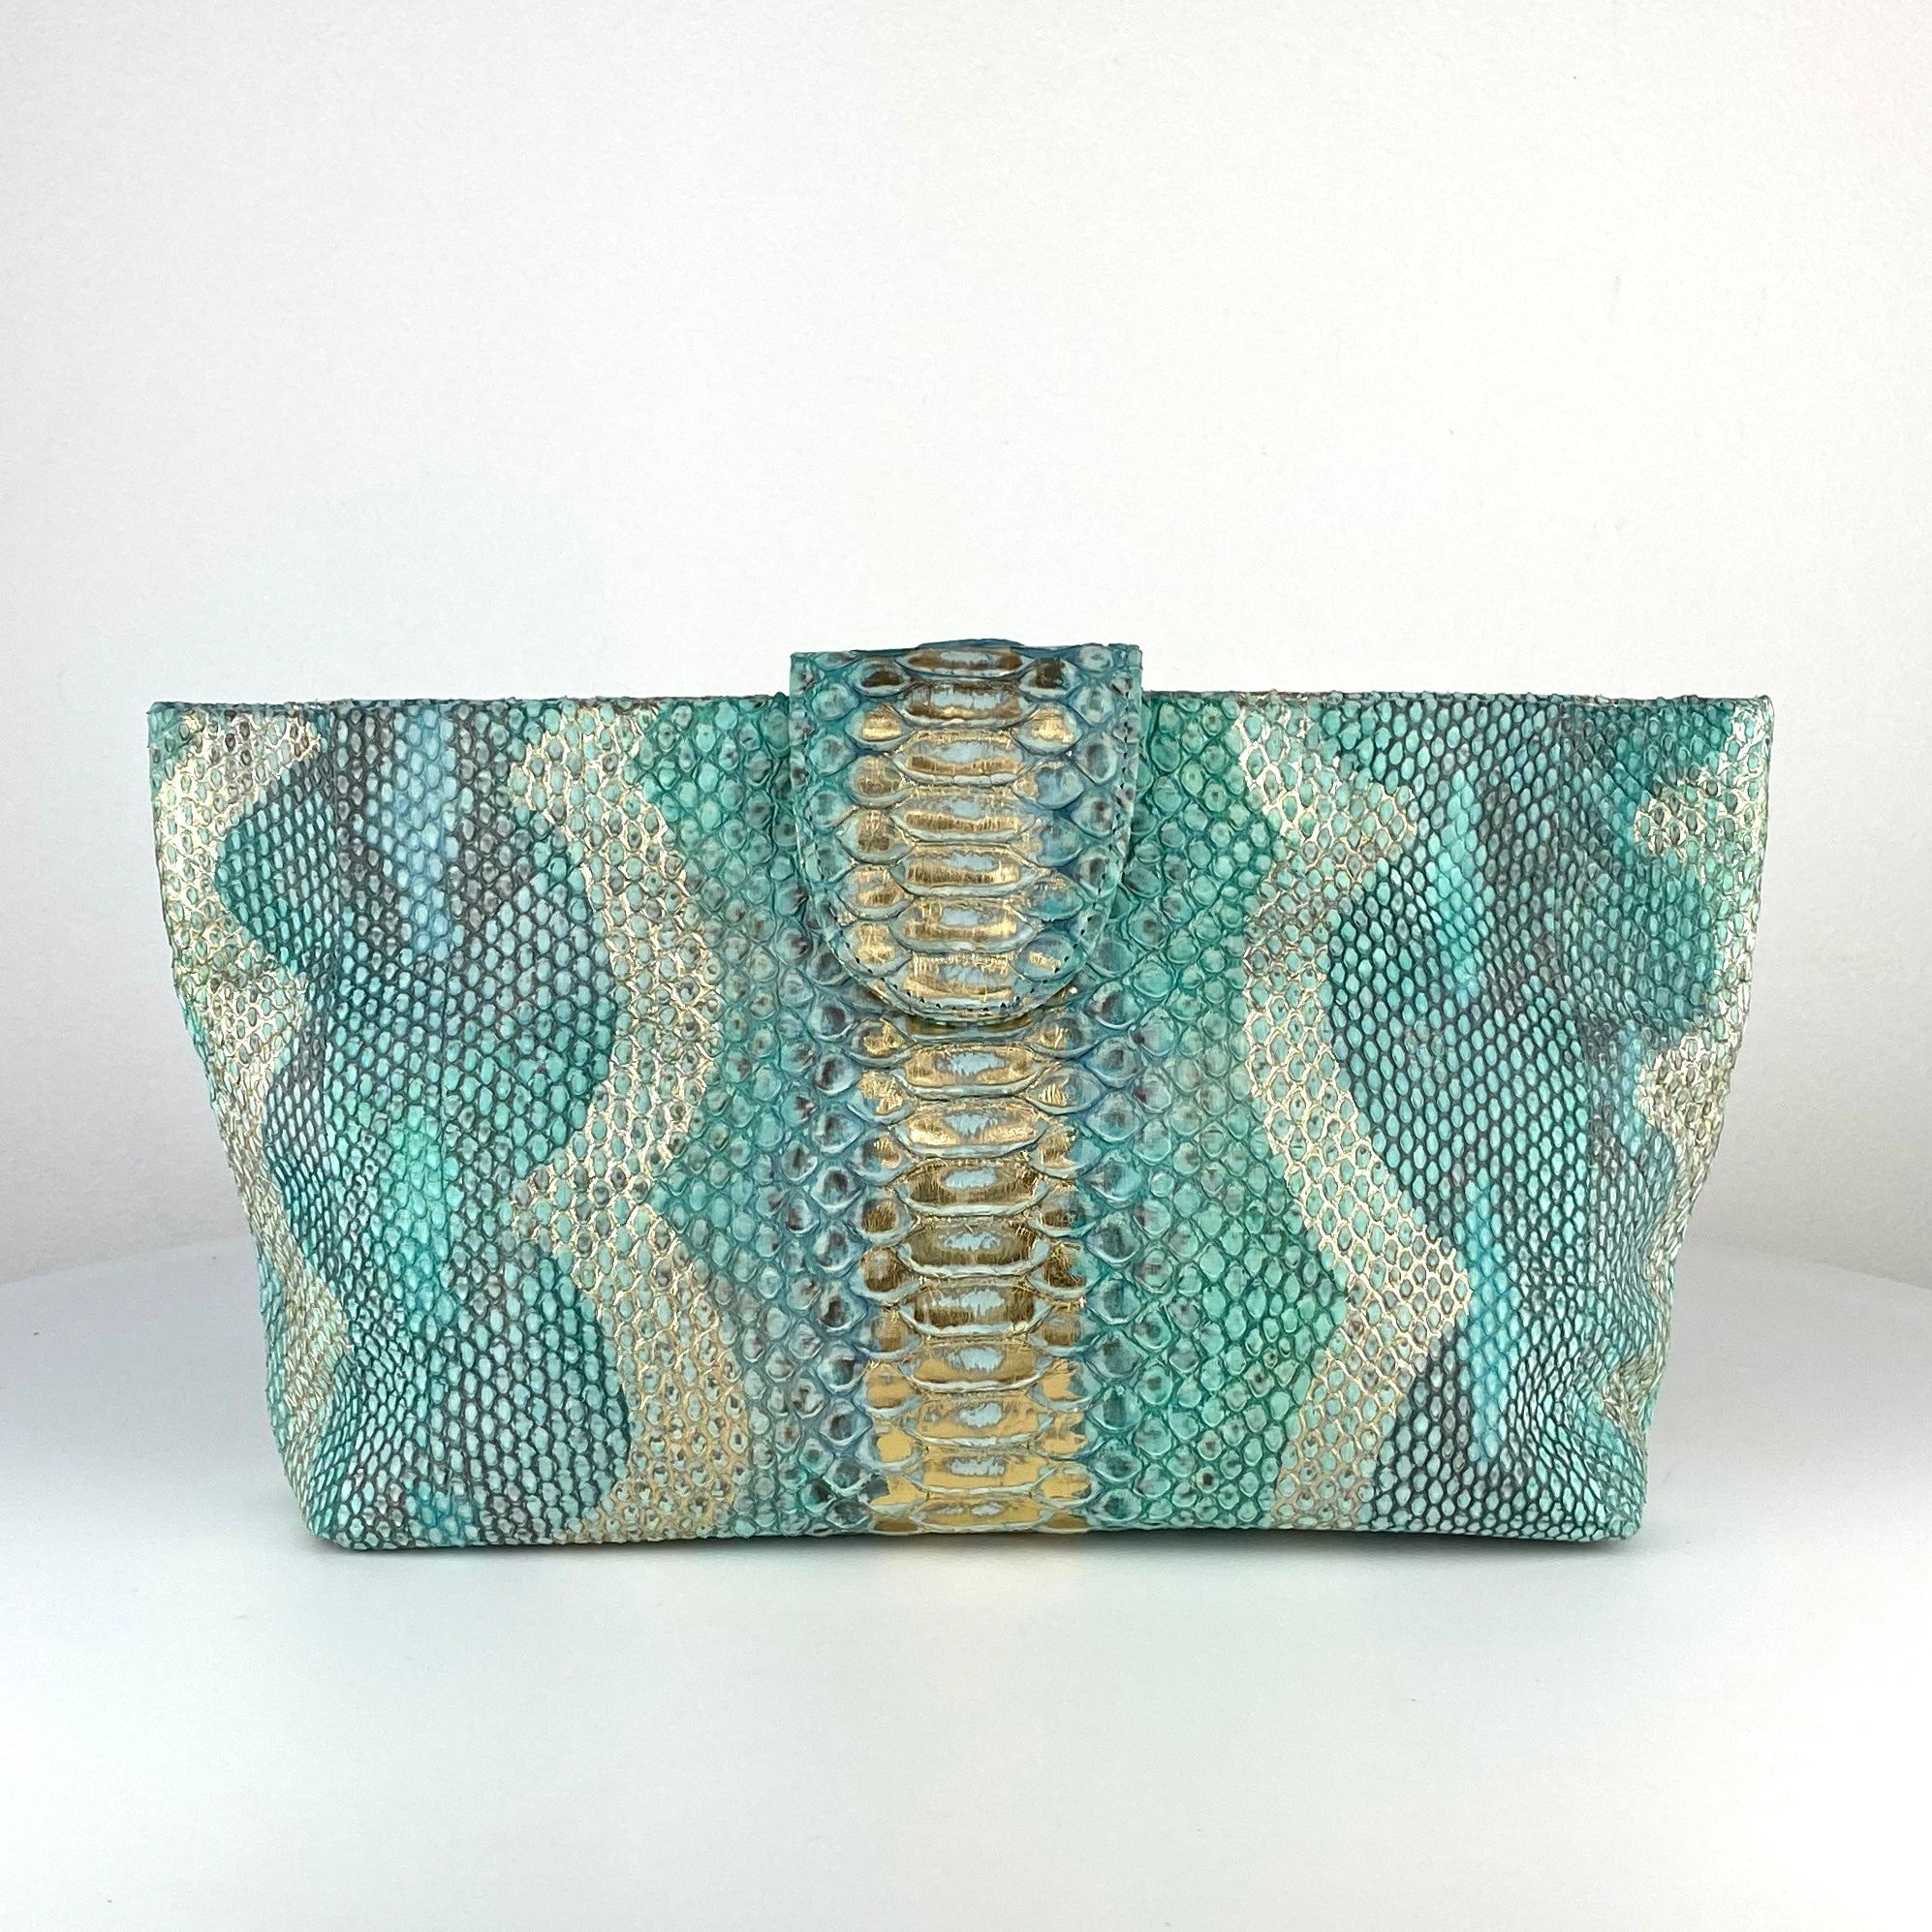 NELLY POUCH BAG, AQUA EXOTIC